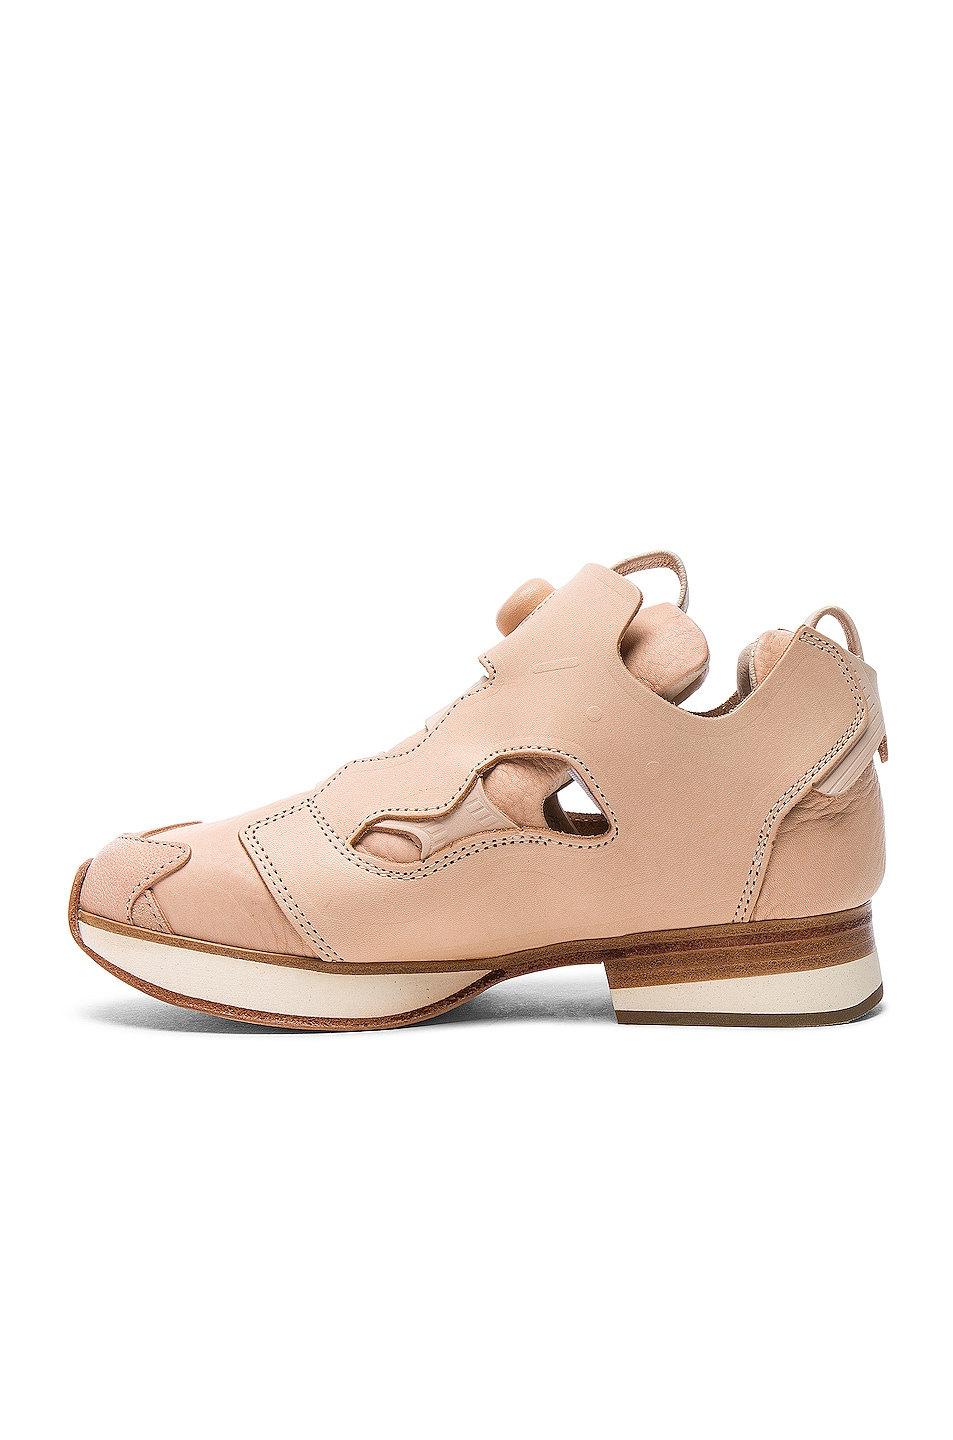 Image 5 of Hender Scheme Manual Industrial Product 15 in Natural